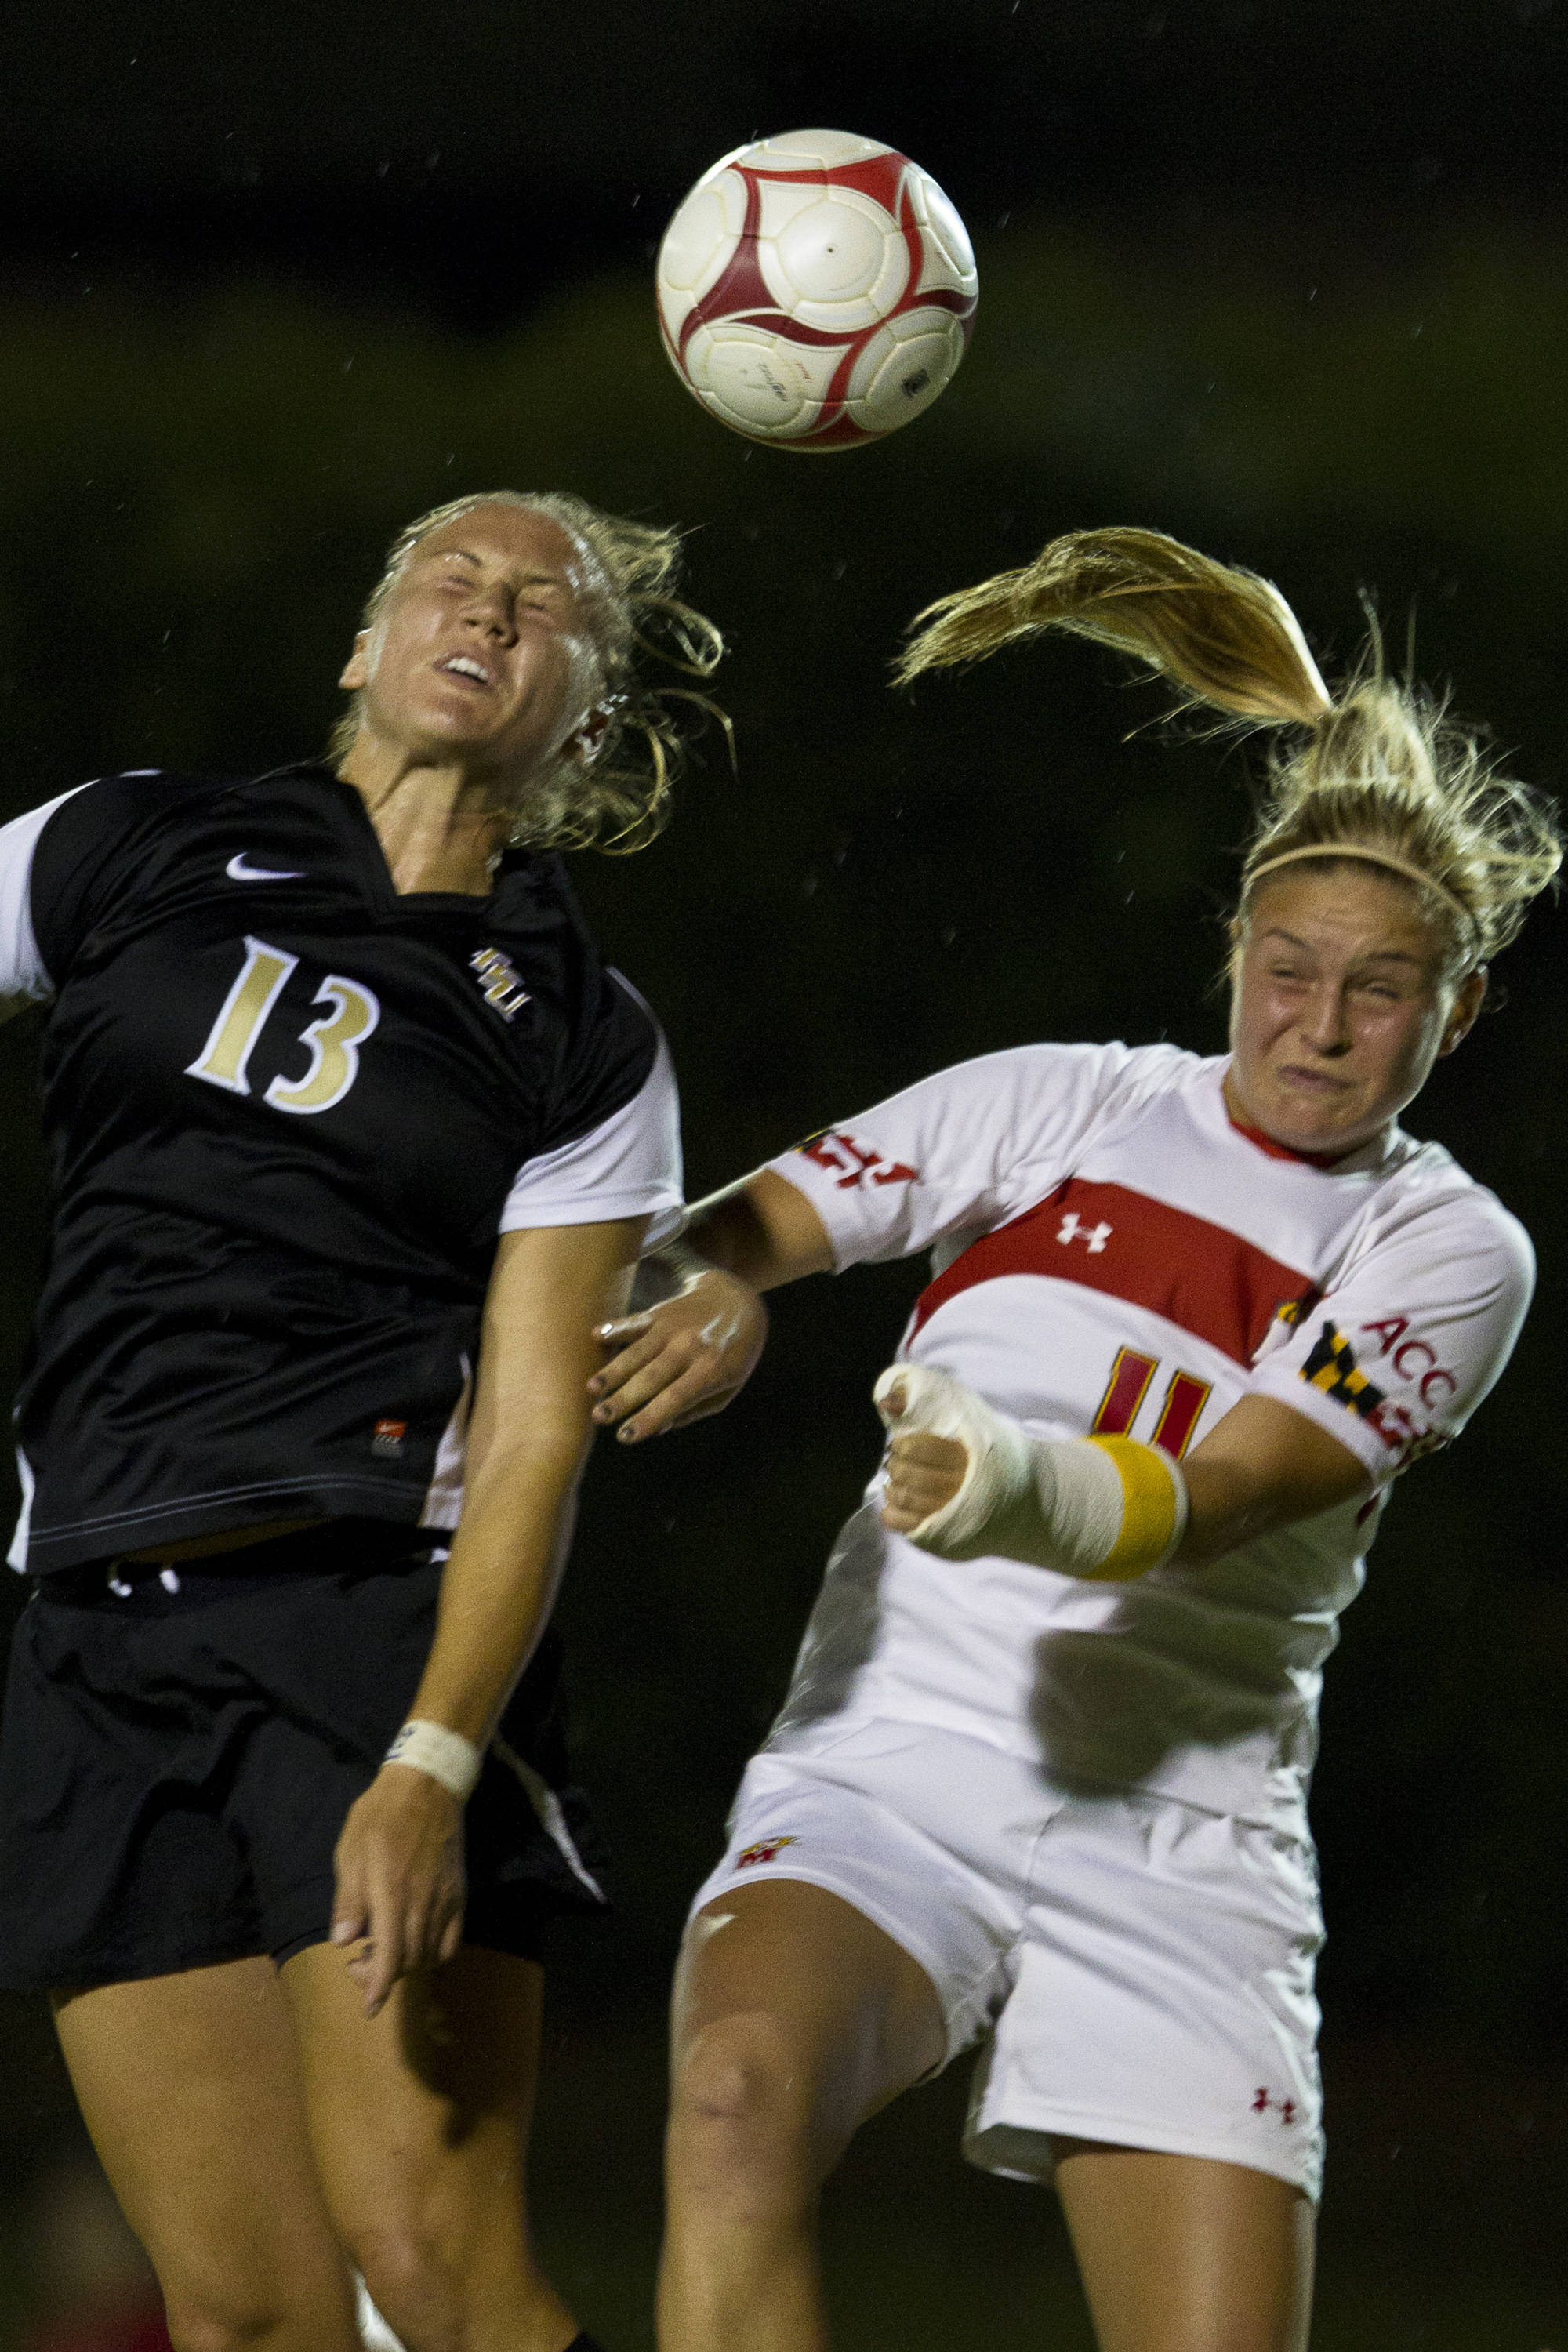 Kristin Grubka (13) attempts to head the ball into the goal  during the game against Maryland on October 13, 2011.